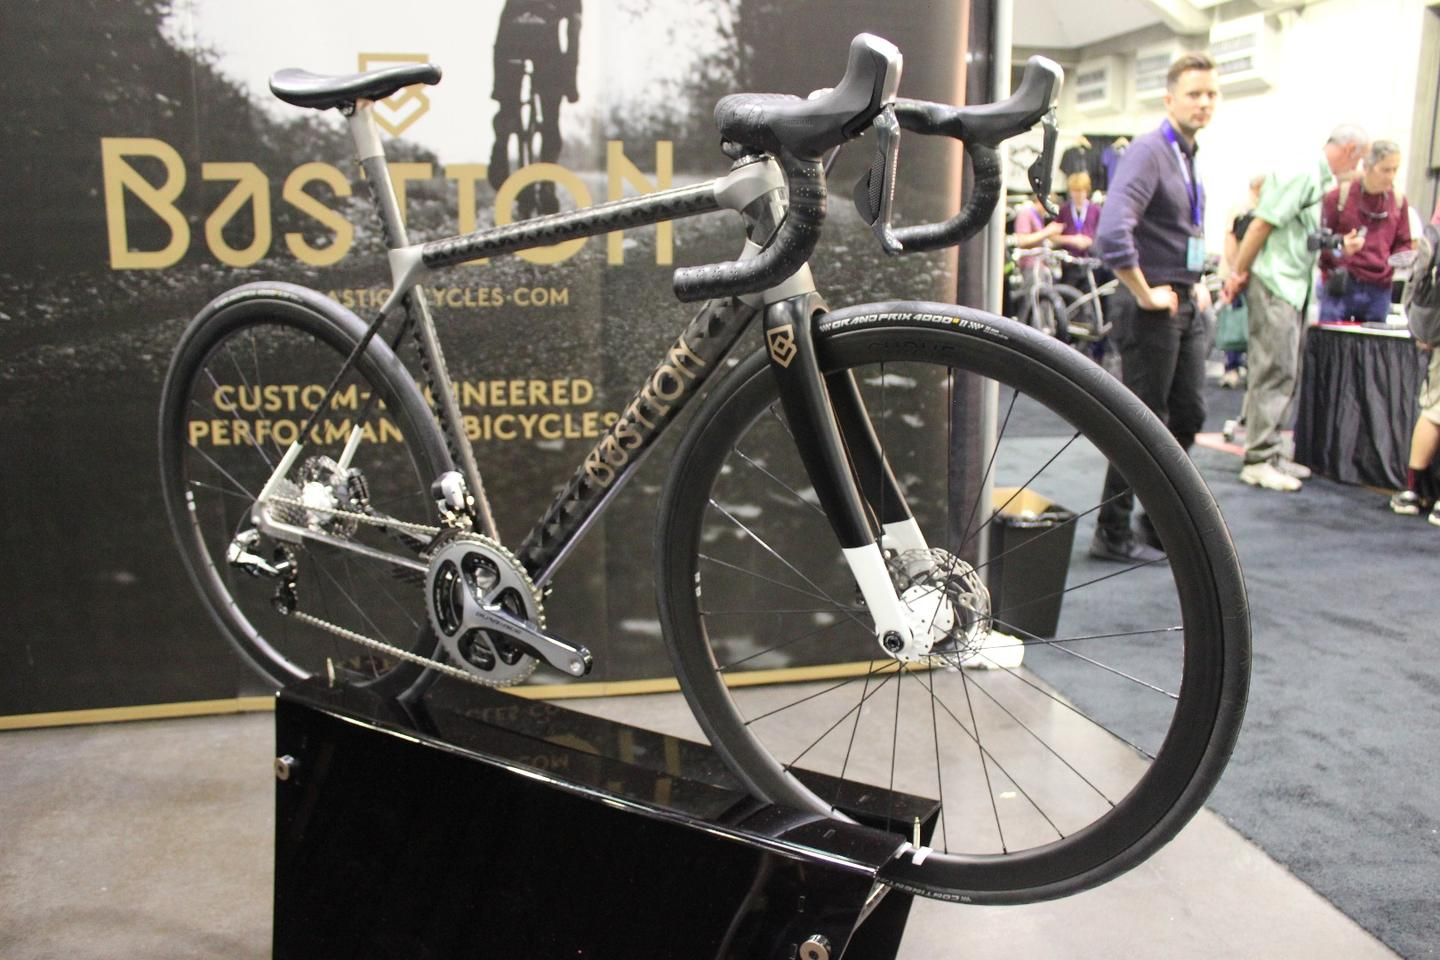 Bastion Cycles' Road Disc bike, on display at NAHBS